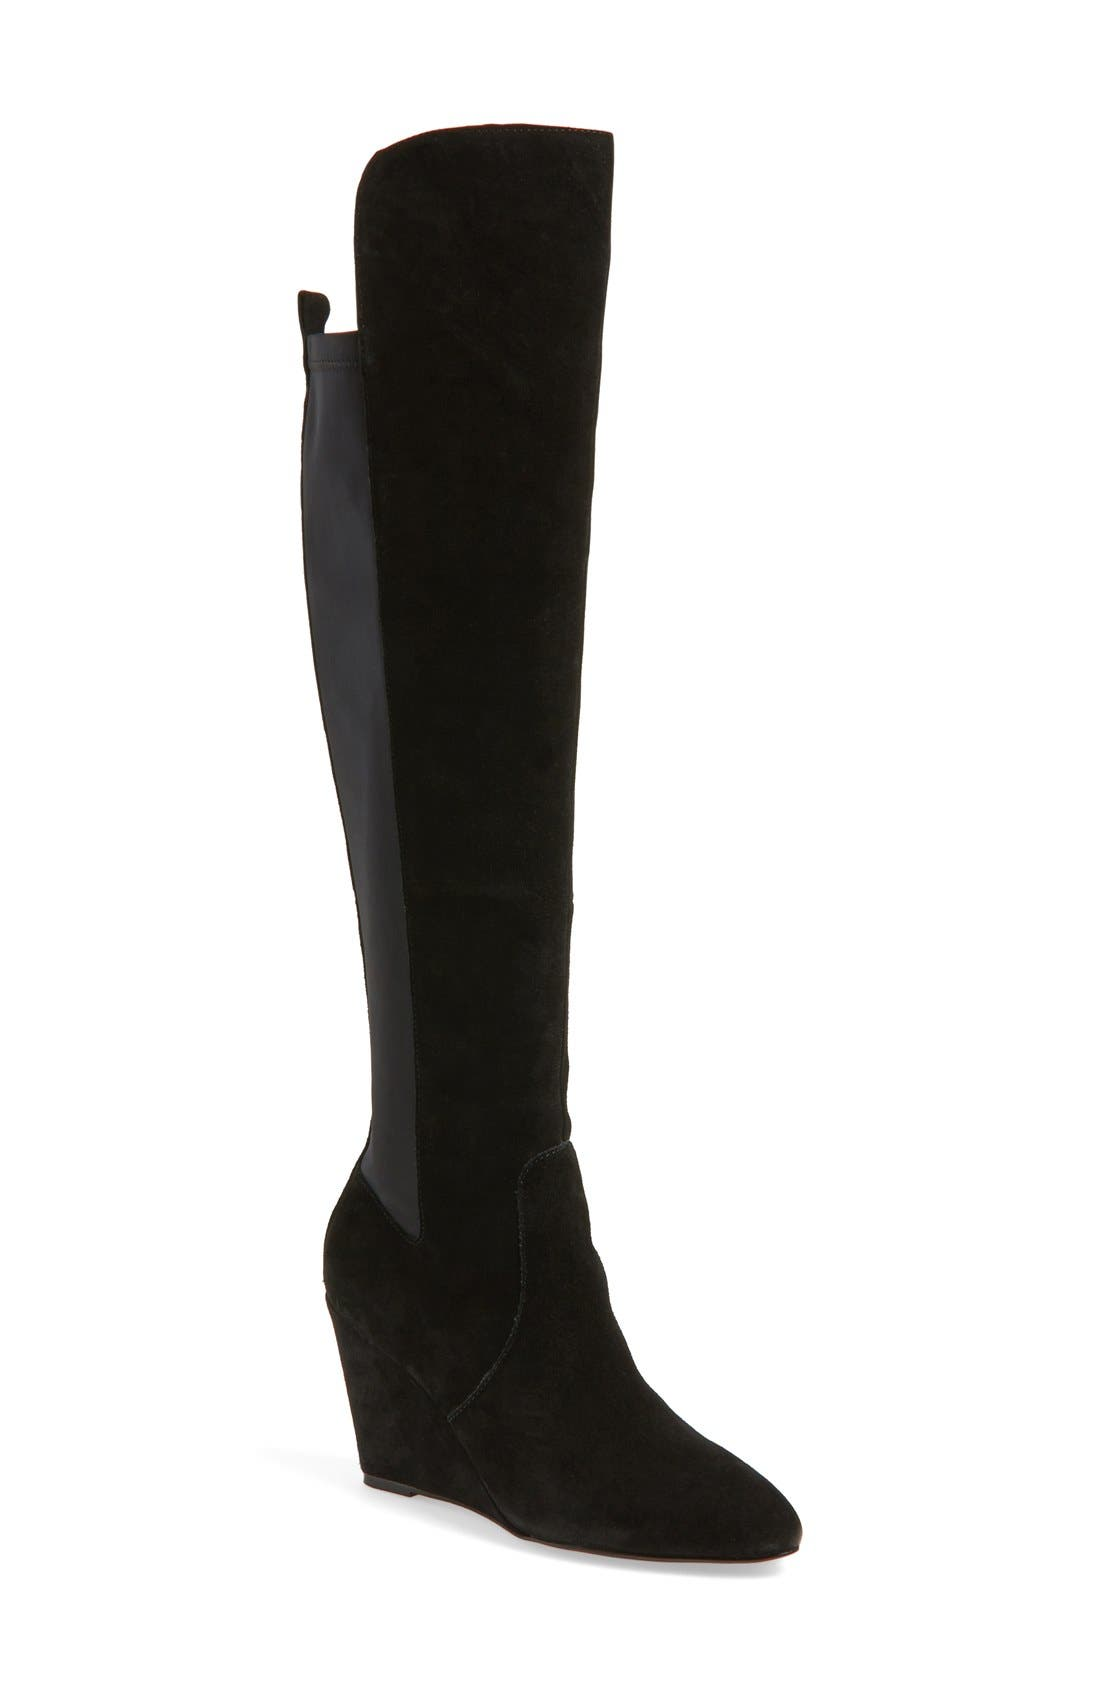 'Edie' Over the Knee Boot,                             Main thumbnail 1, color,                             002